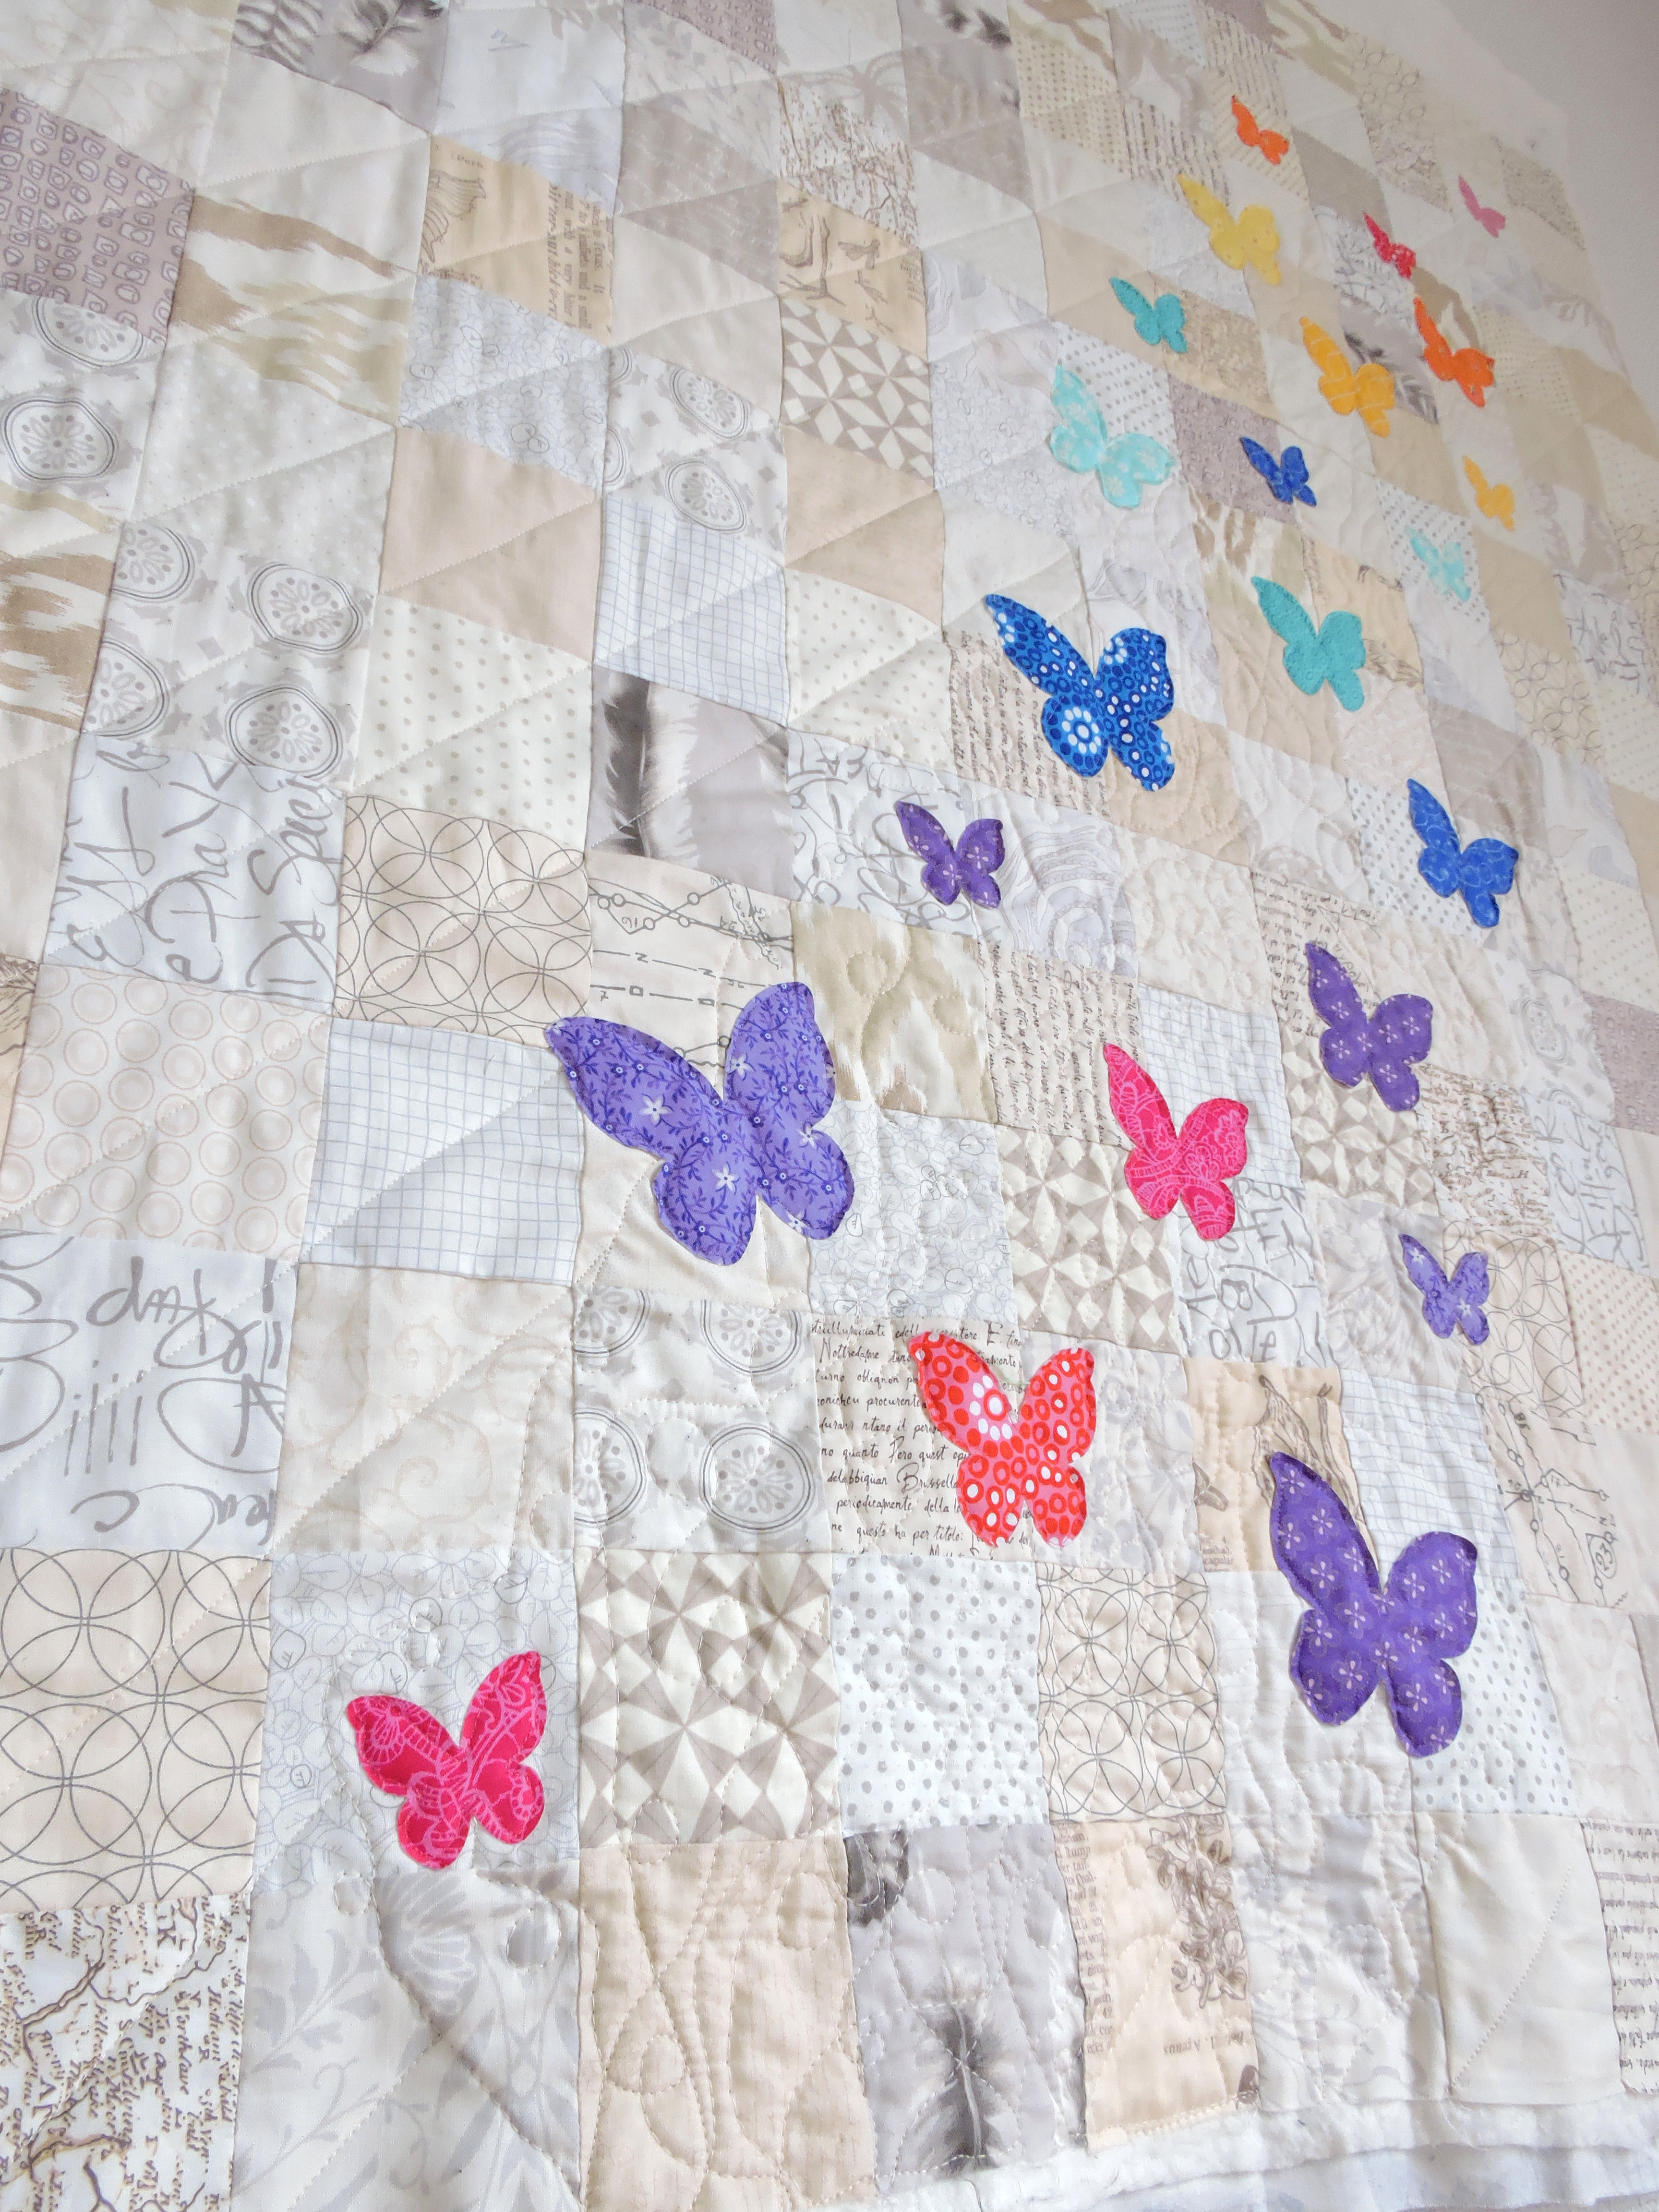 Planning My Free Motion Quilting   Blossom Heart Quilts : planning a quilt - Adamdwight.com